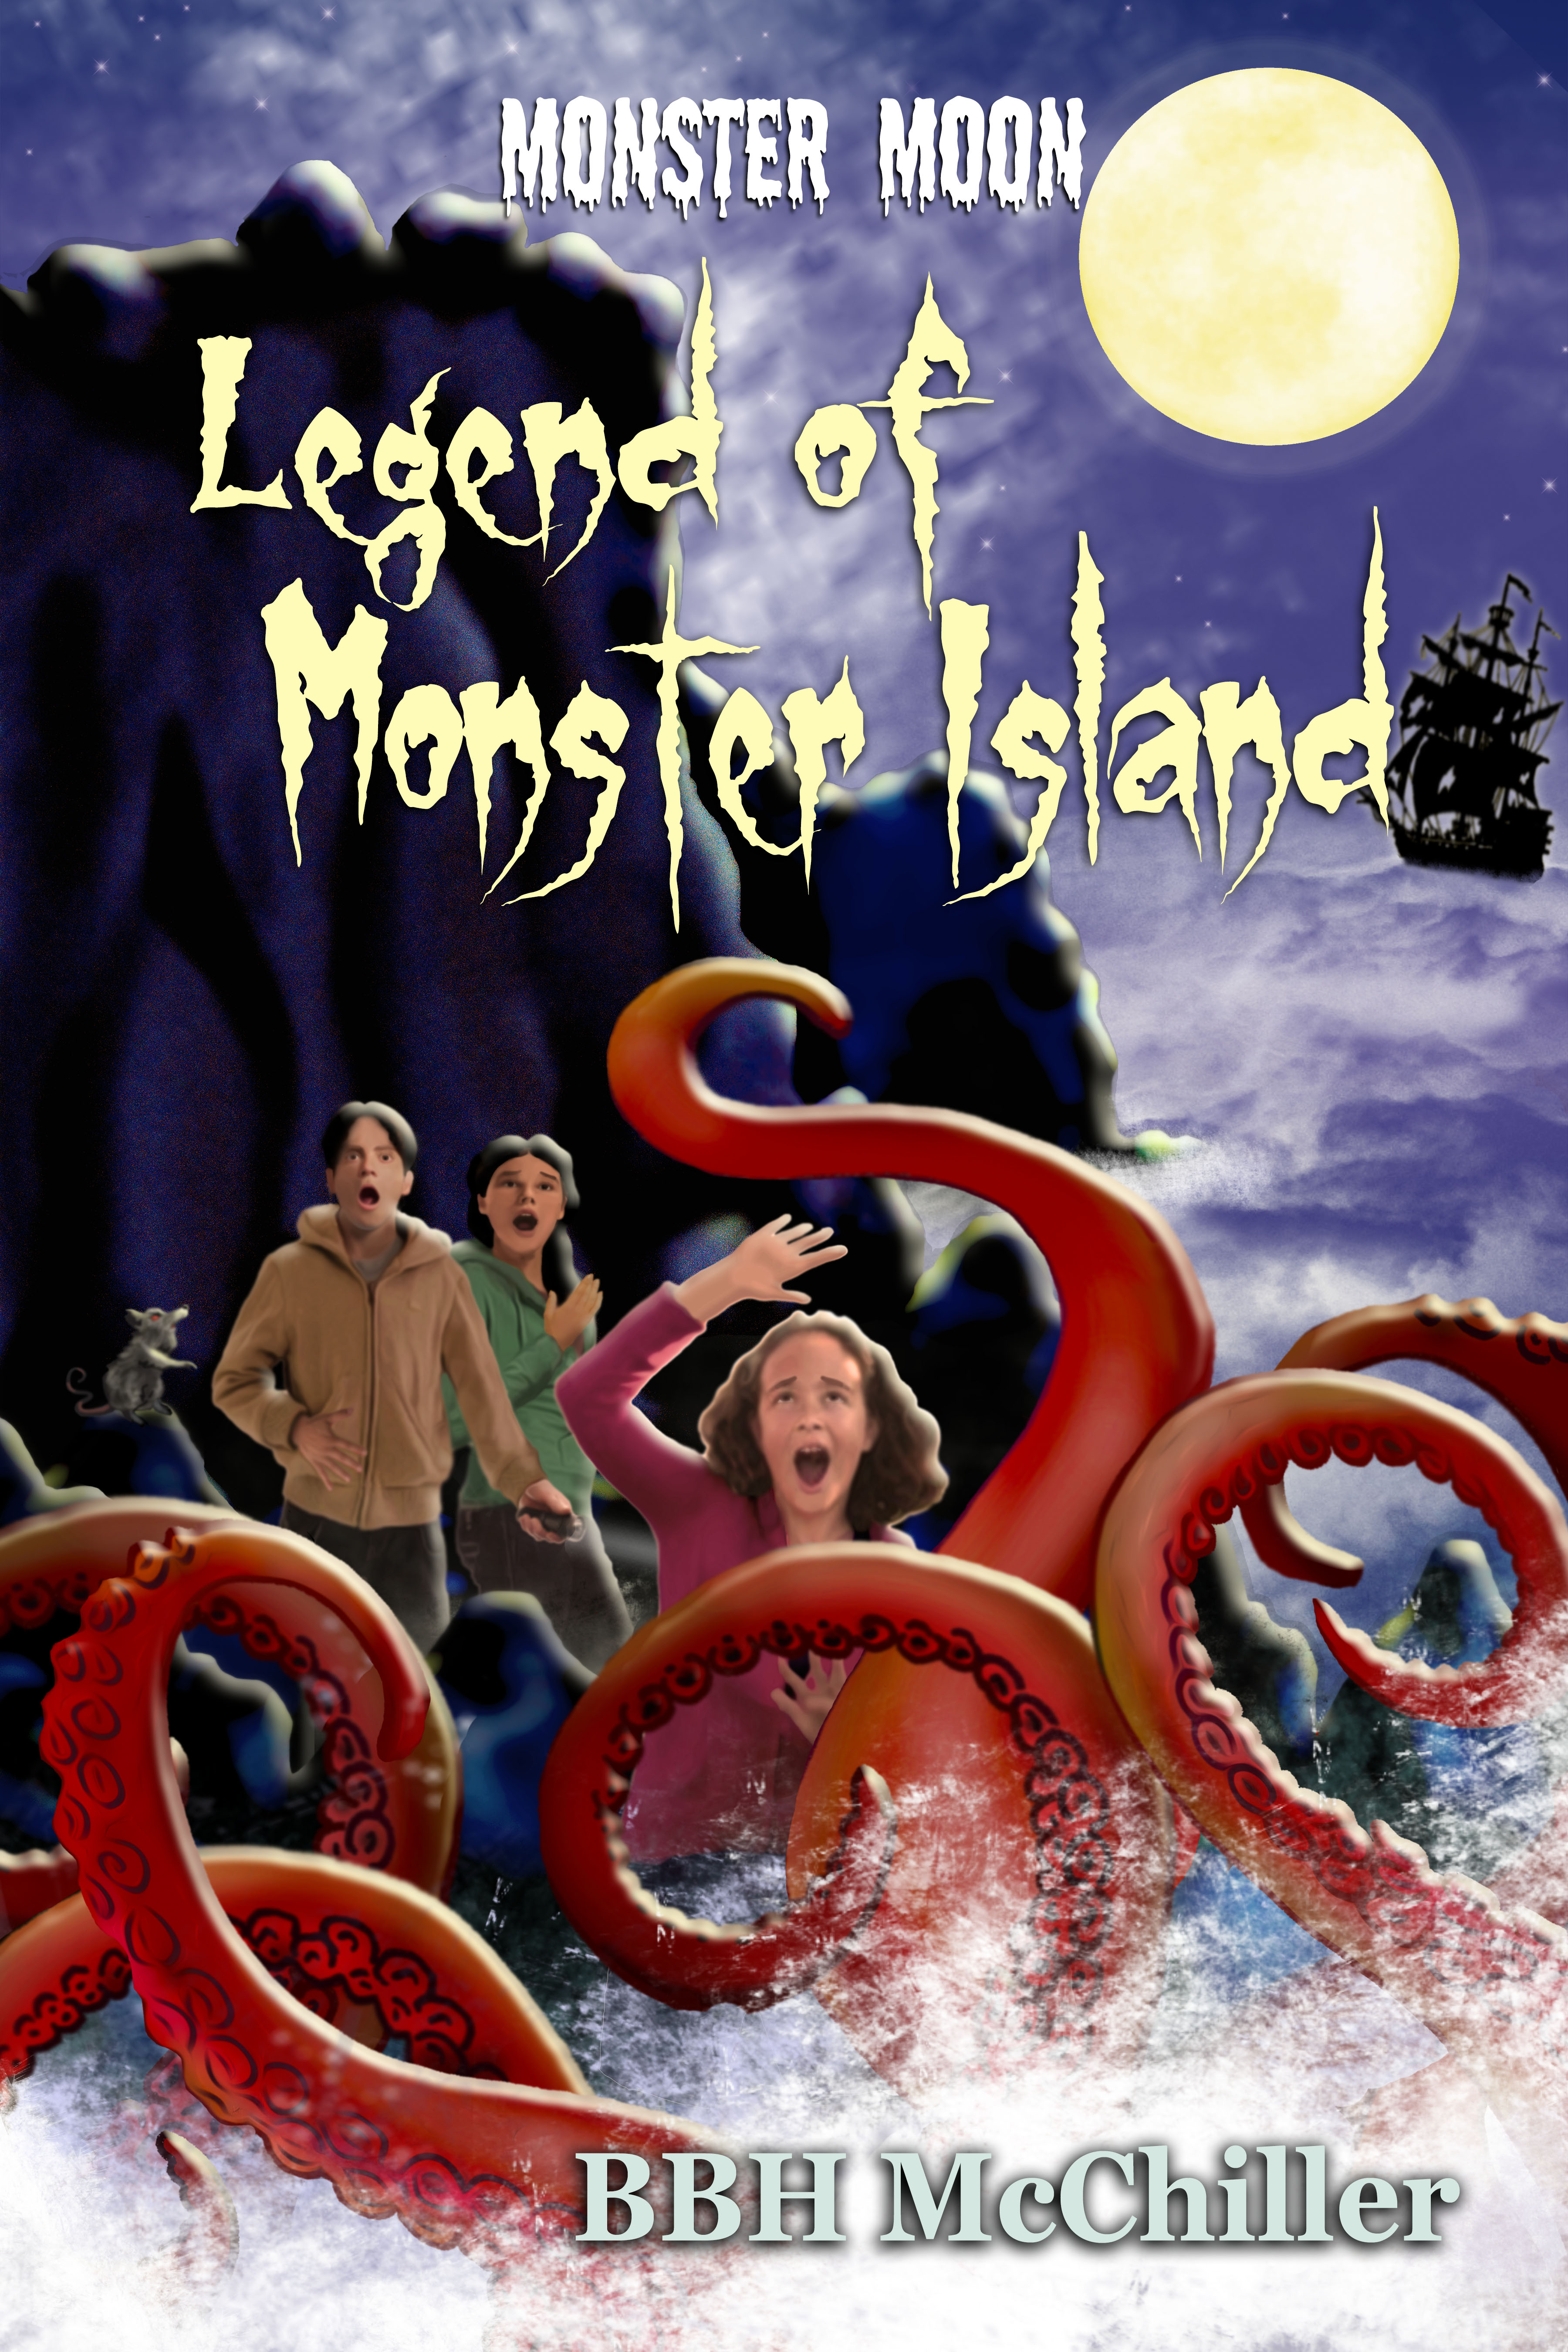 Cover Reveal For Our Next Book, Legend Of Monster Island